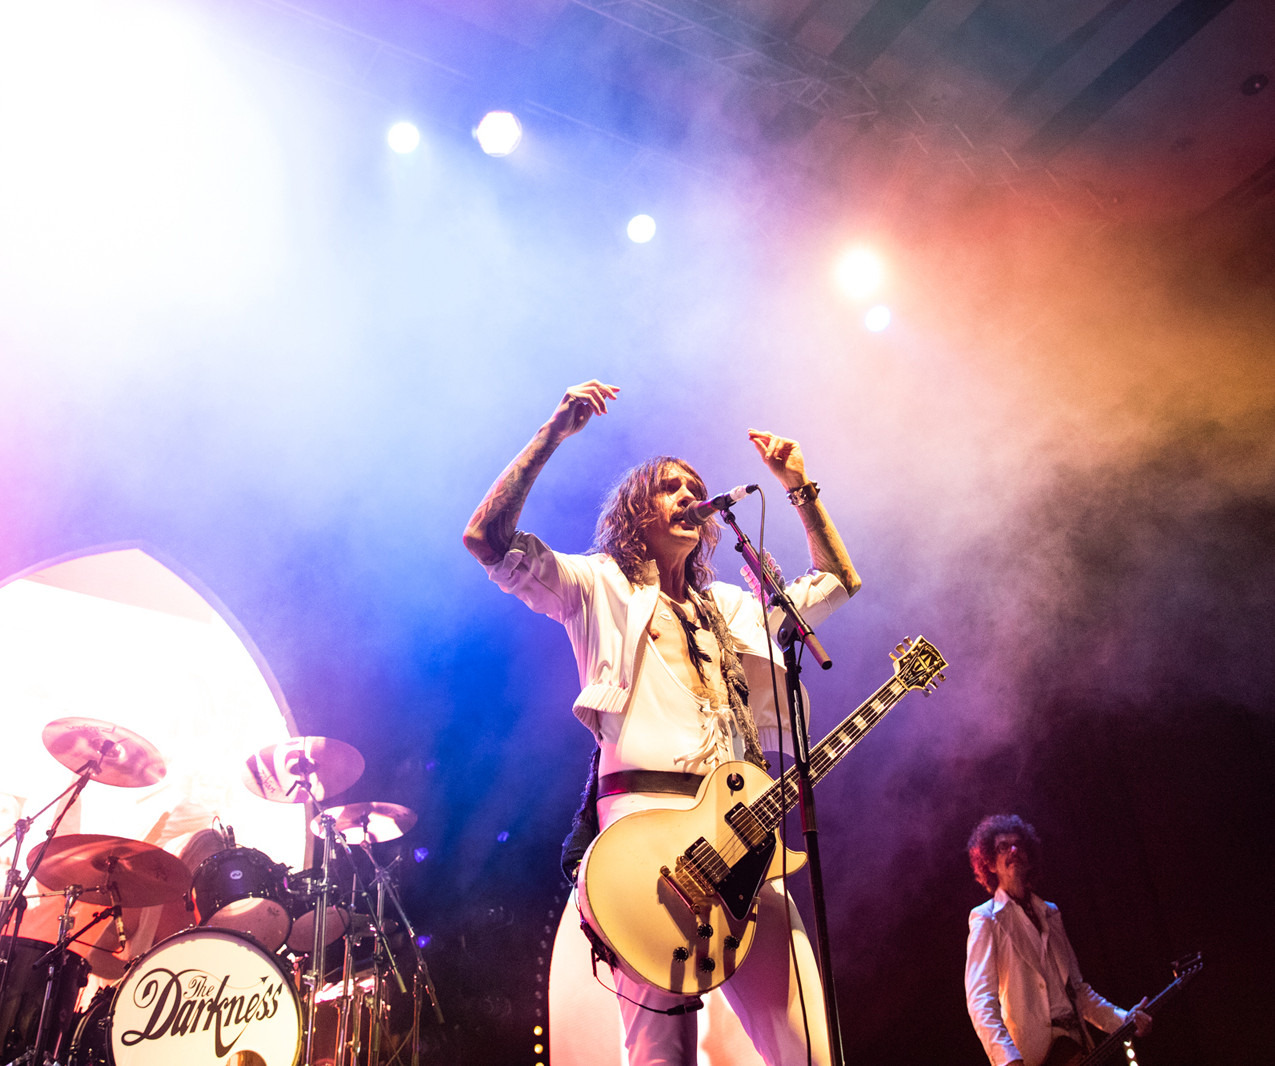 The Darkness, photo by Gili Dailes (14).